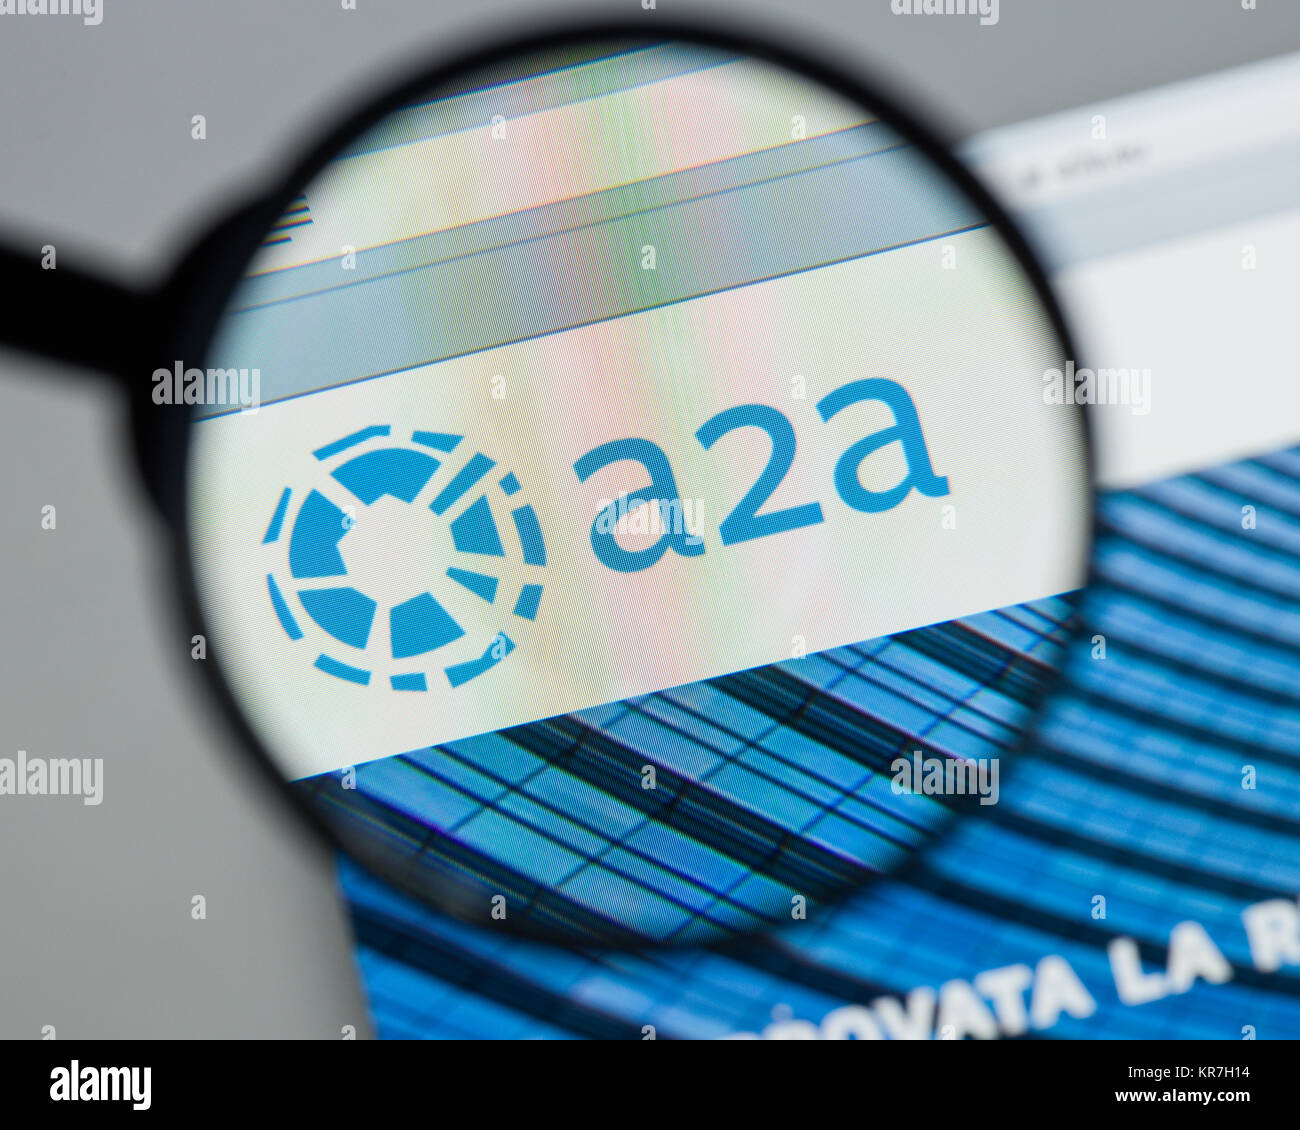 Milan, Italy - August 10, 2017: A2A website homepage. It . A2A logo visible. Stock Photo